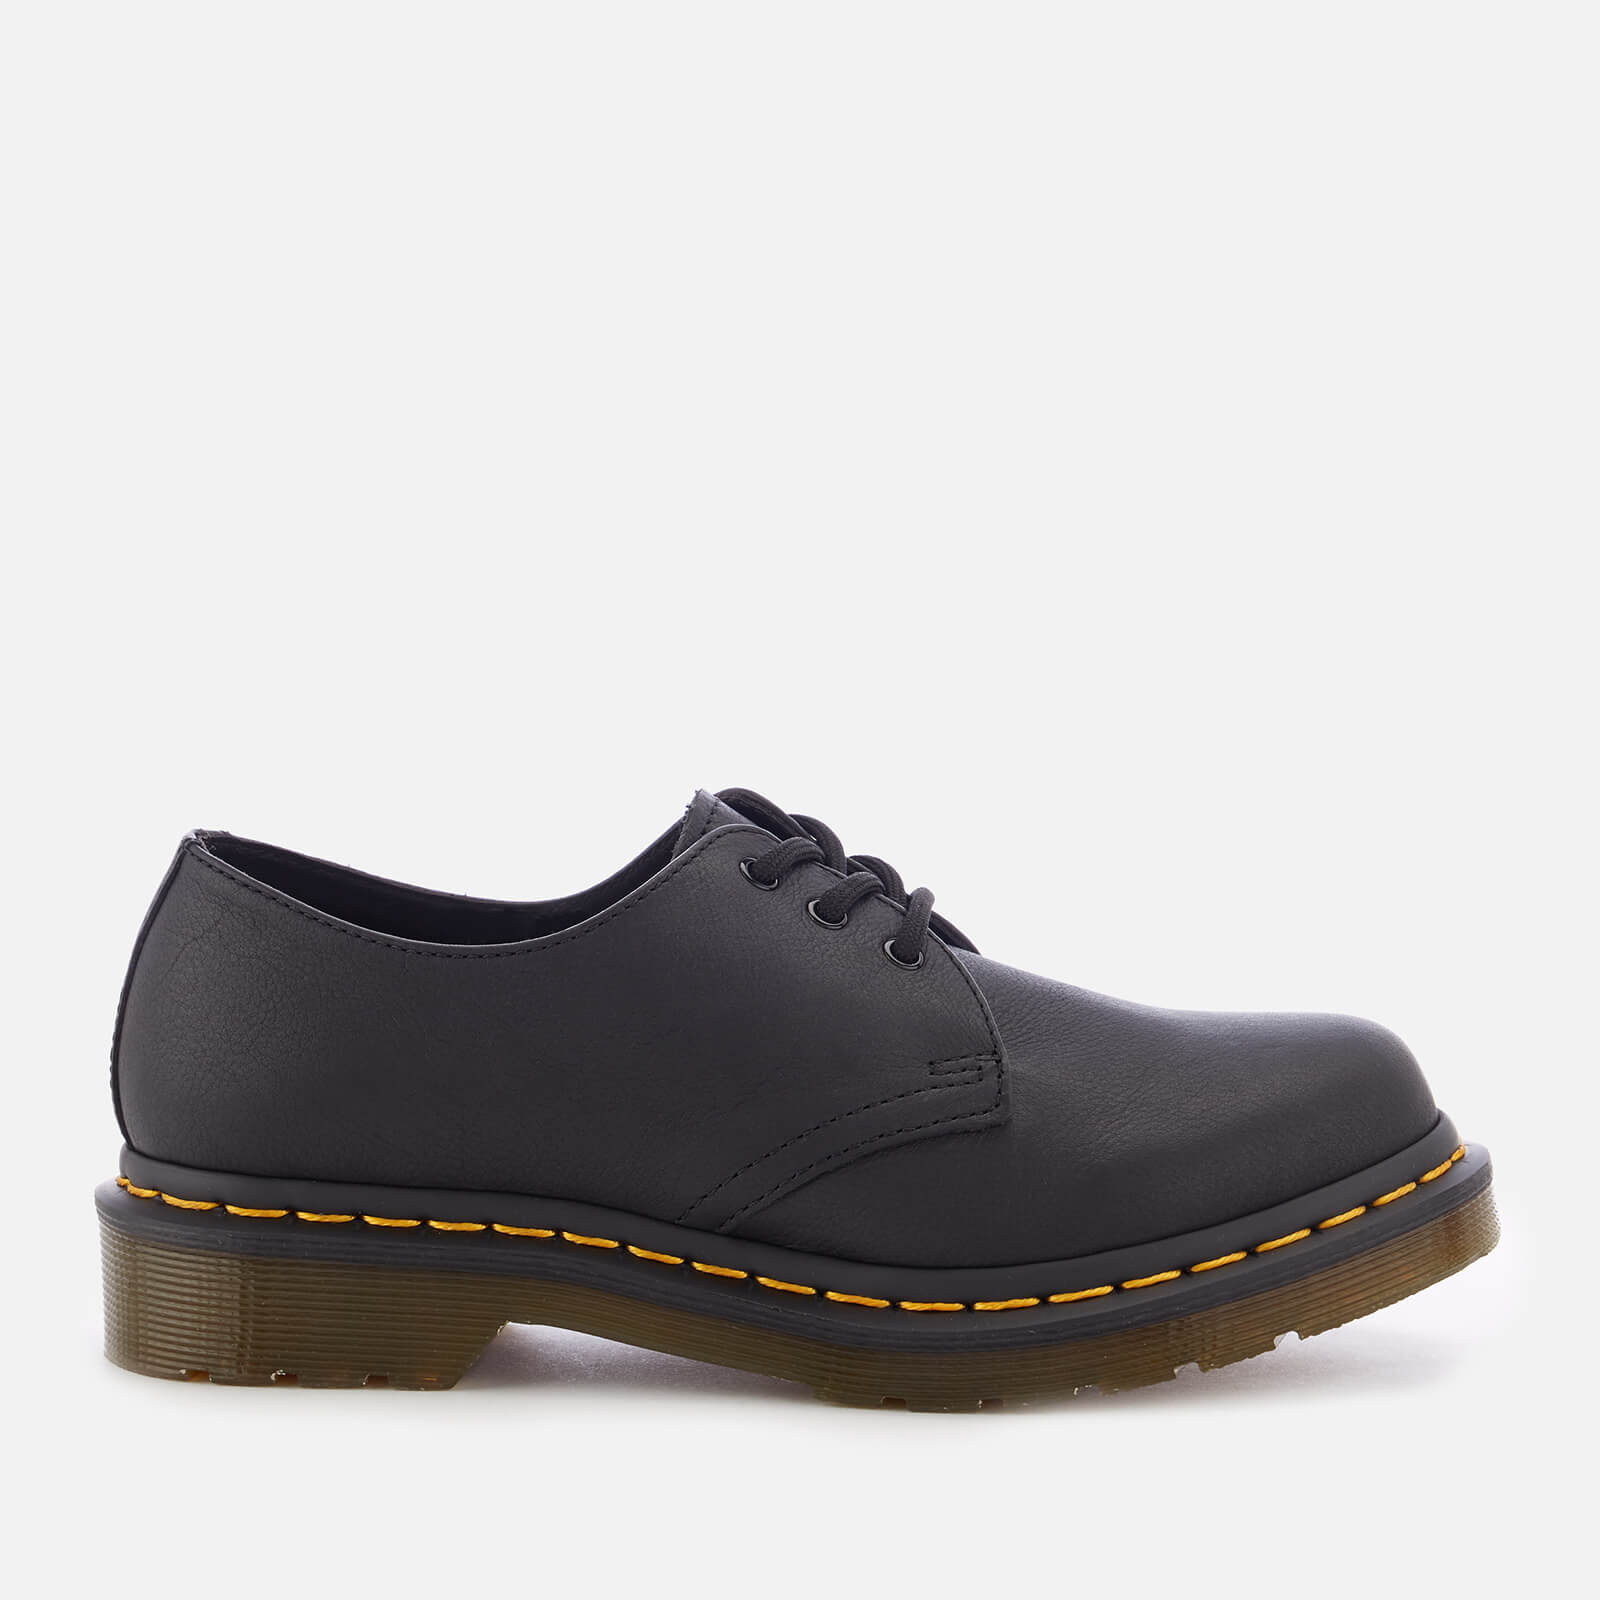 Dr. Martens Women's 1461 W Virginia Leather 3-Eye Shoes - Black - UK 8 - Black from Dr. Martens